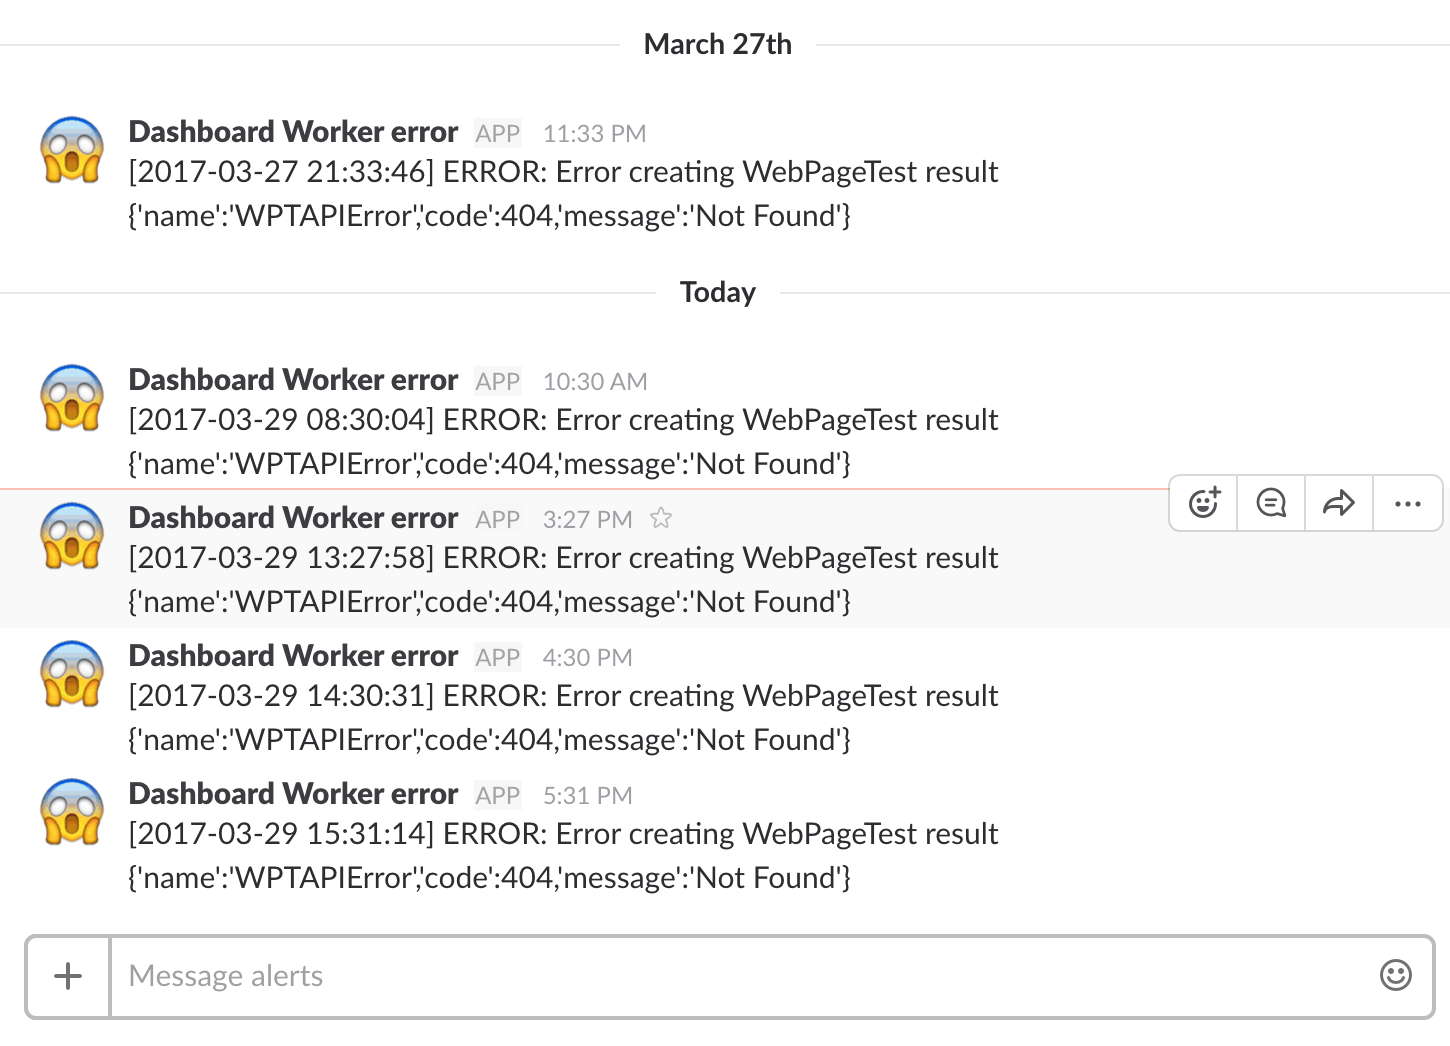 Getting alerts from Slack when we get an error in the logs